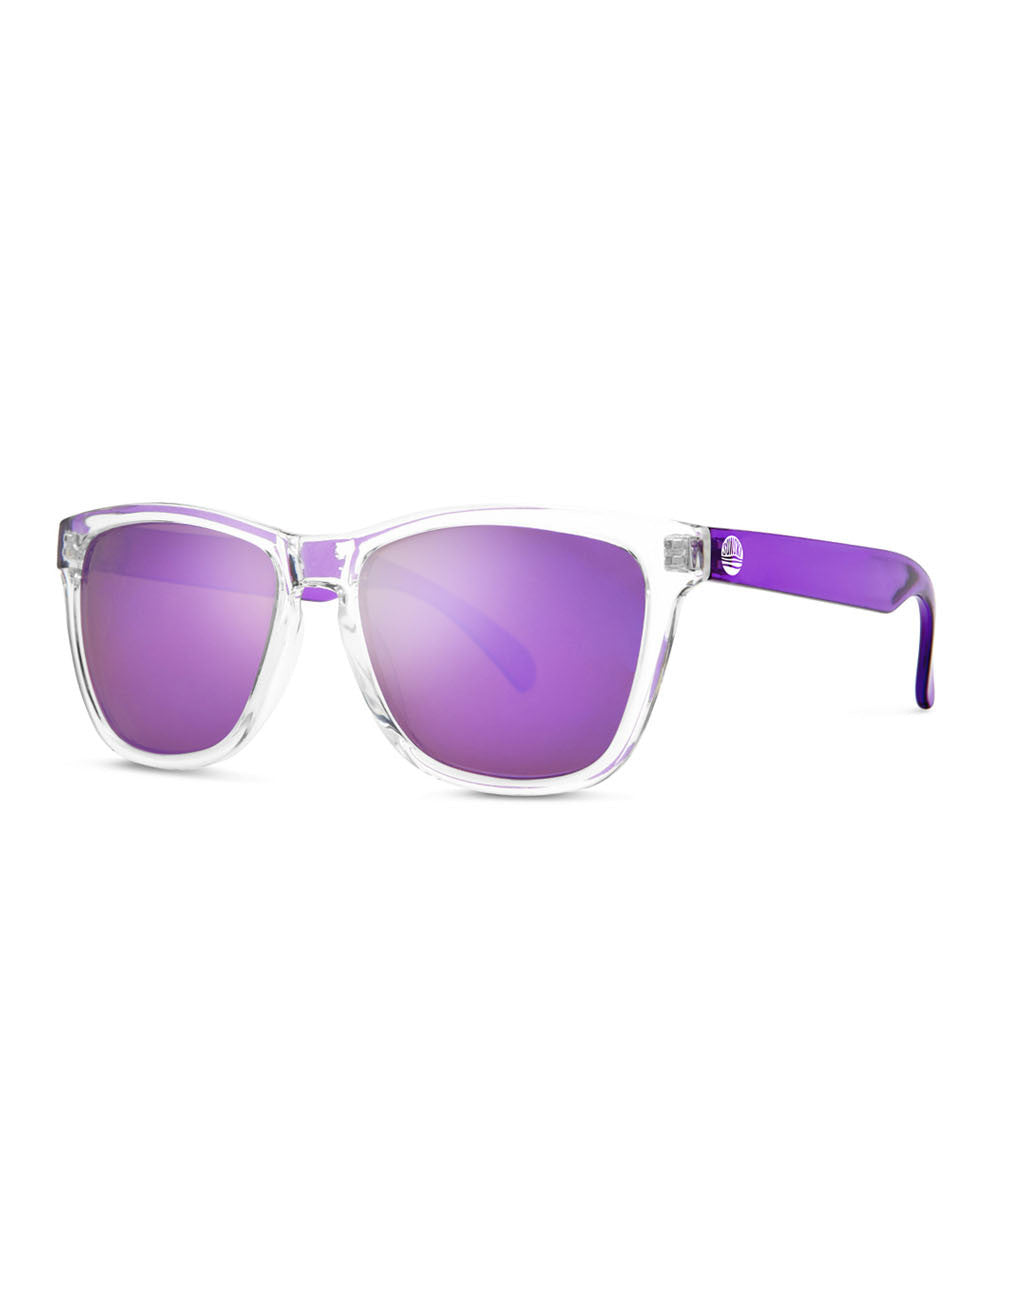 Sunski Original SunglassesPurple_master_image